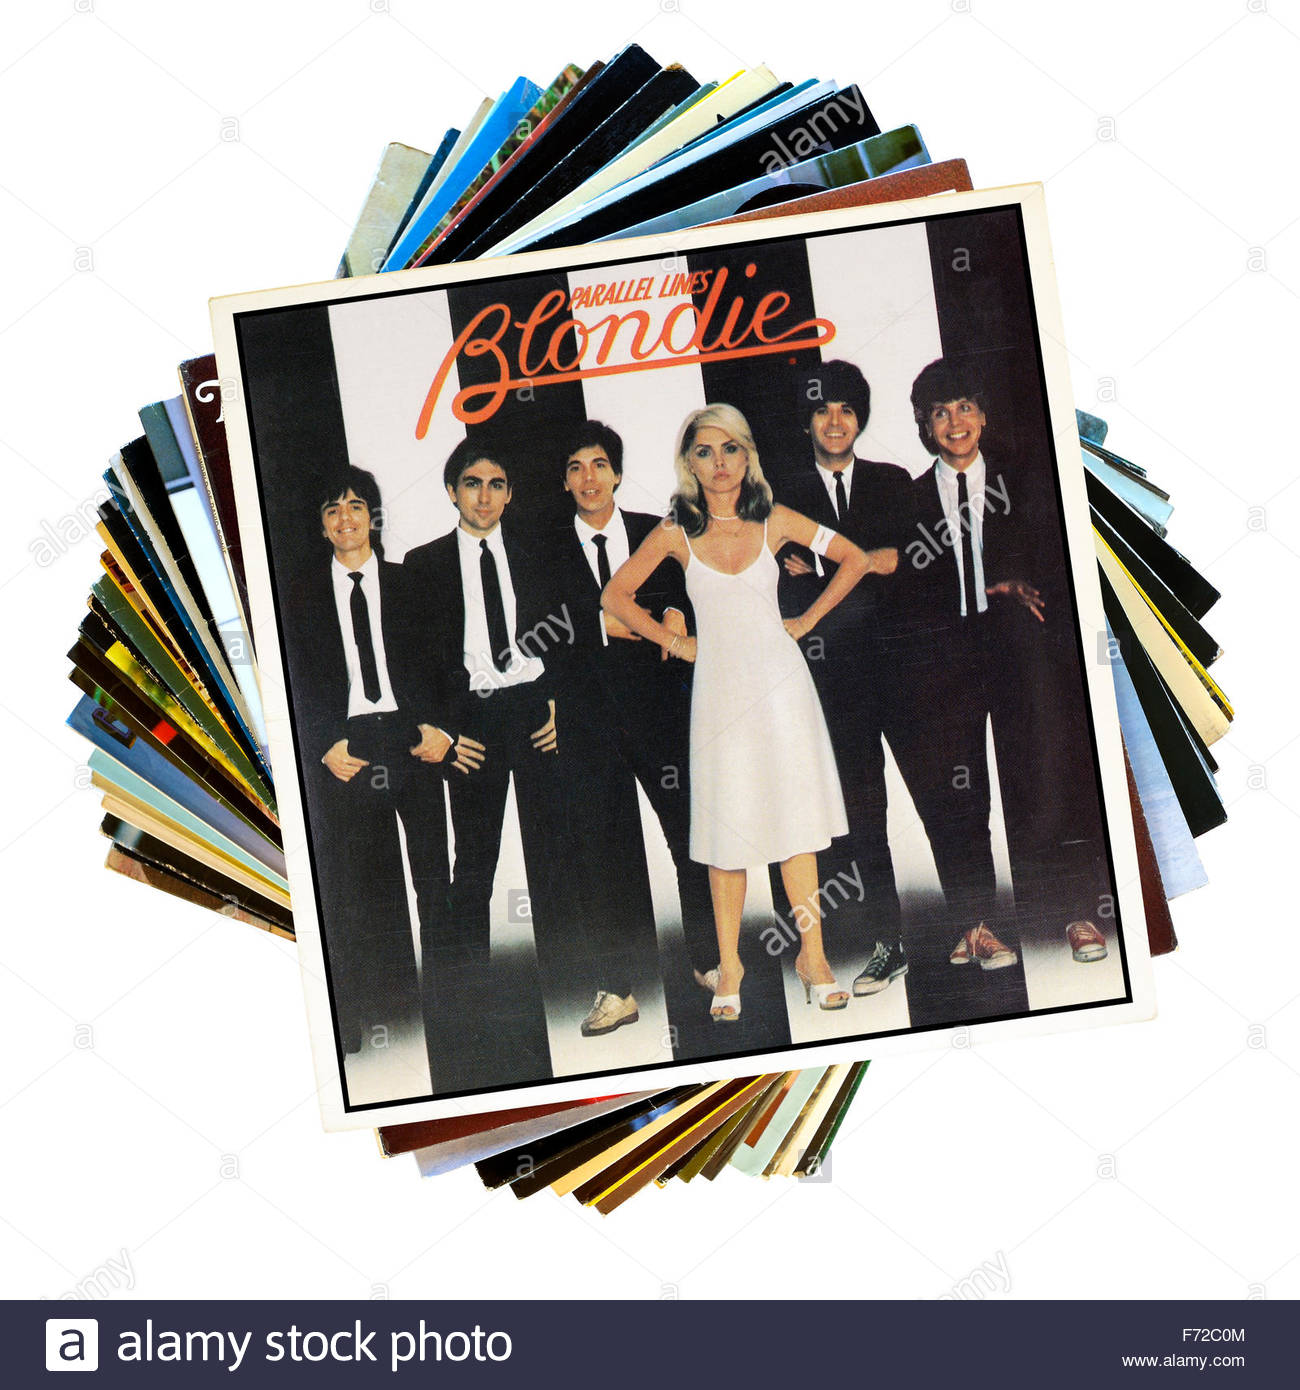 Blondie 1978 album Parallel Lines, stack of LP records, England Stock Photo